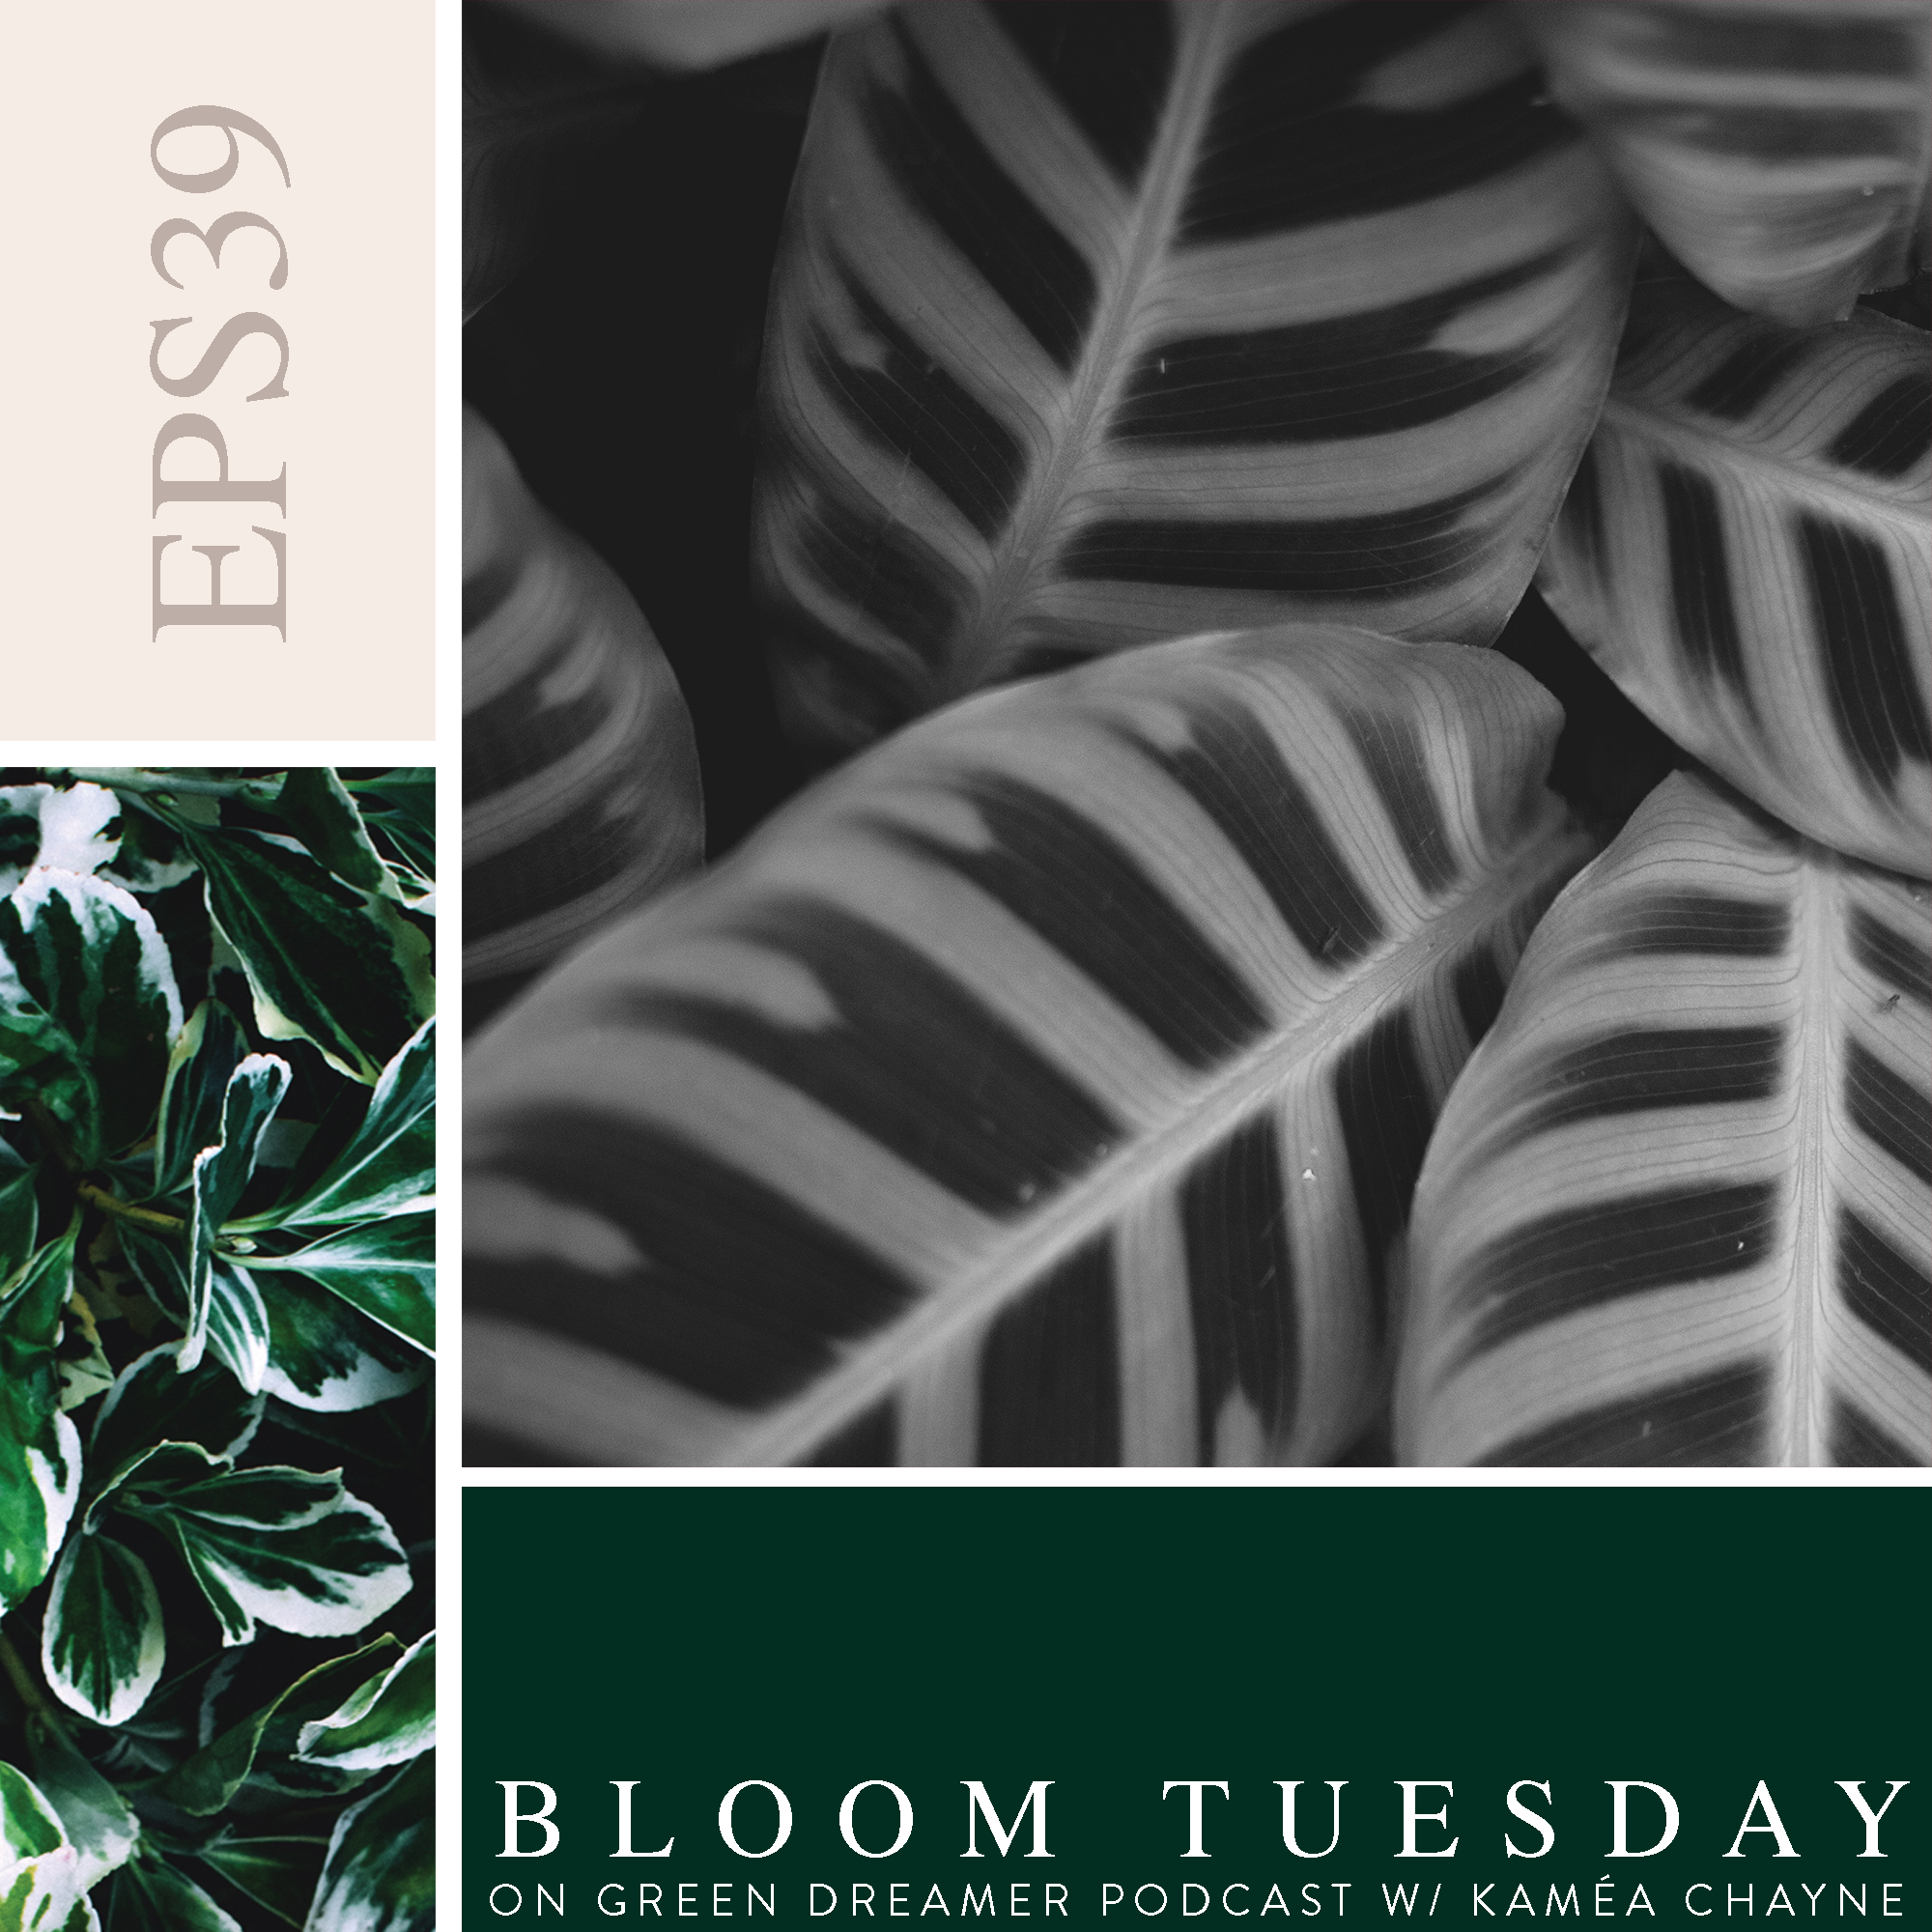 39) BLOOM TUESDAY